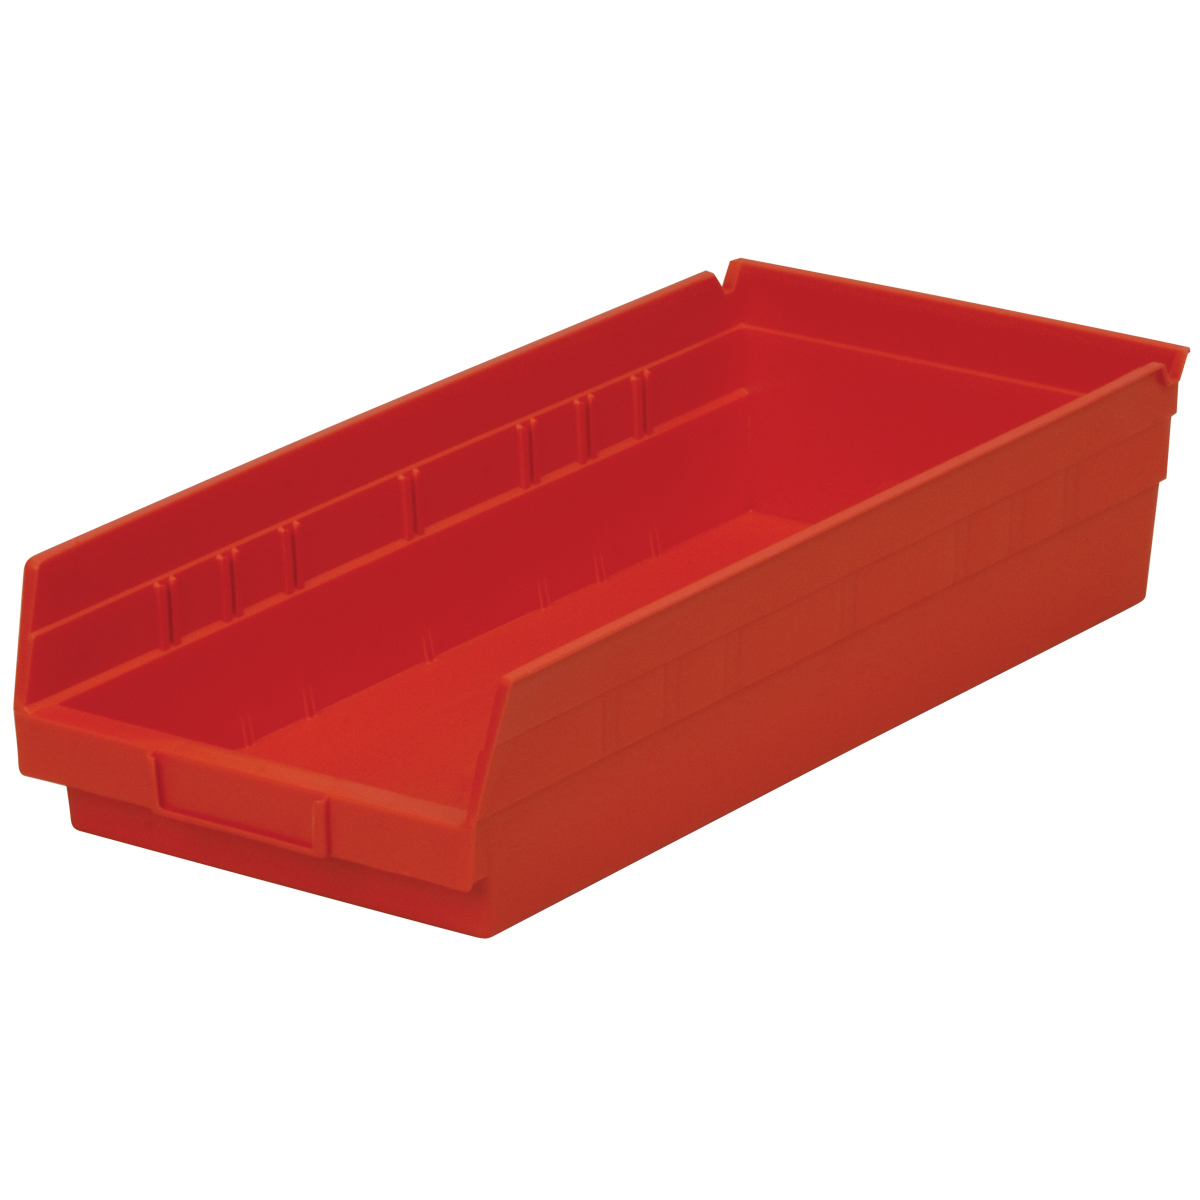 Shelf Bin 17-7/8 x 8-3/8 x 4, Red (30158RED).  This item sold in carton quantities of 12.